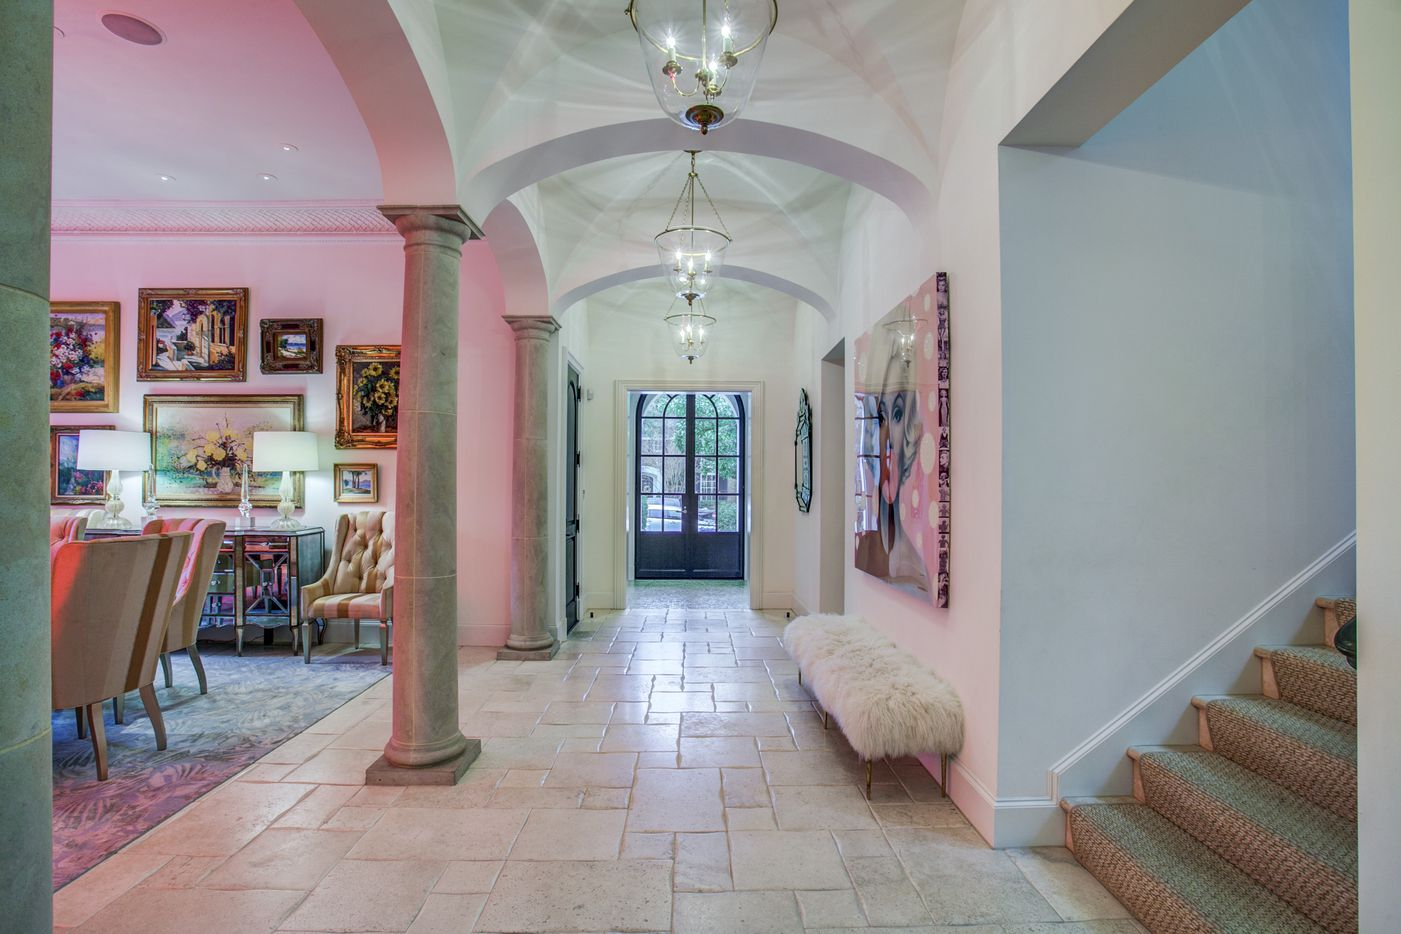 A look at the dining room of the Dallas home Kameron Westcott is selling.